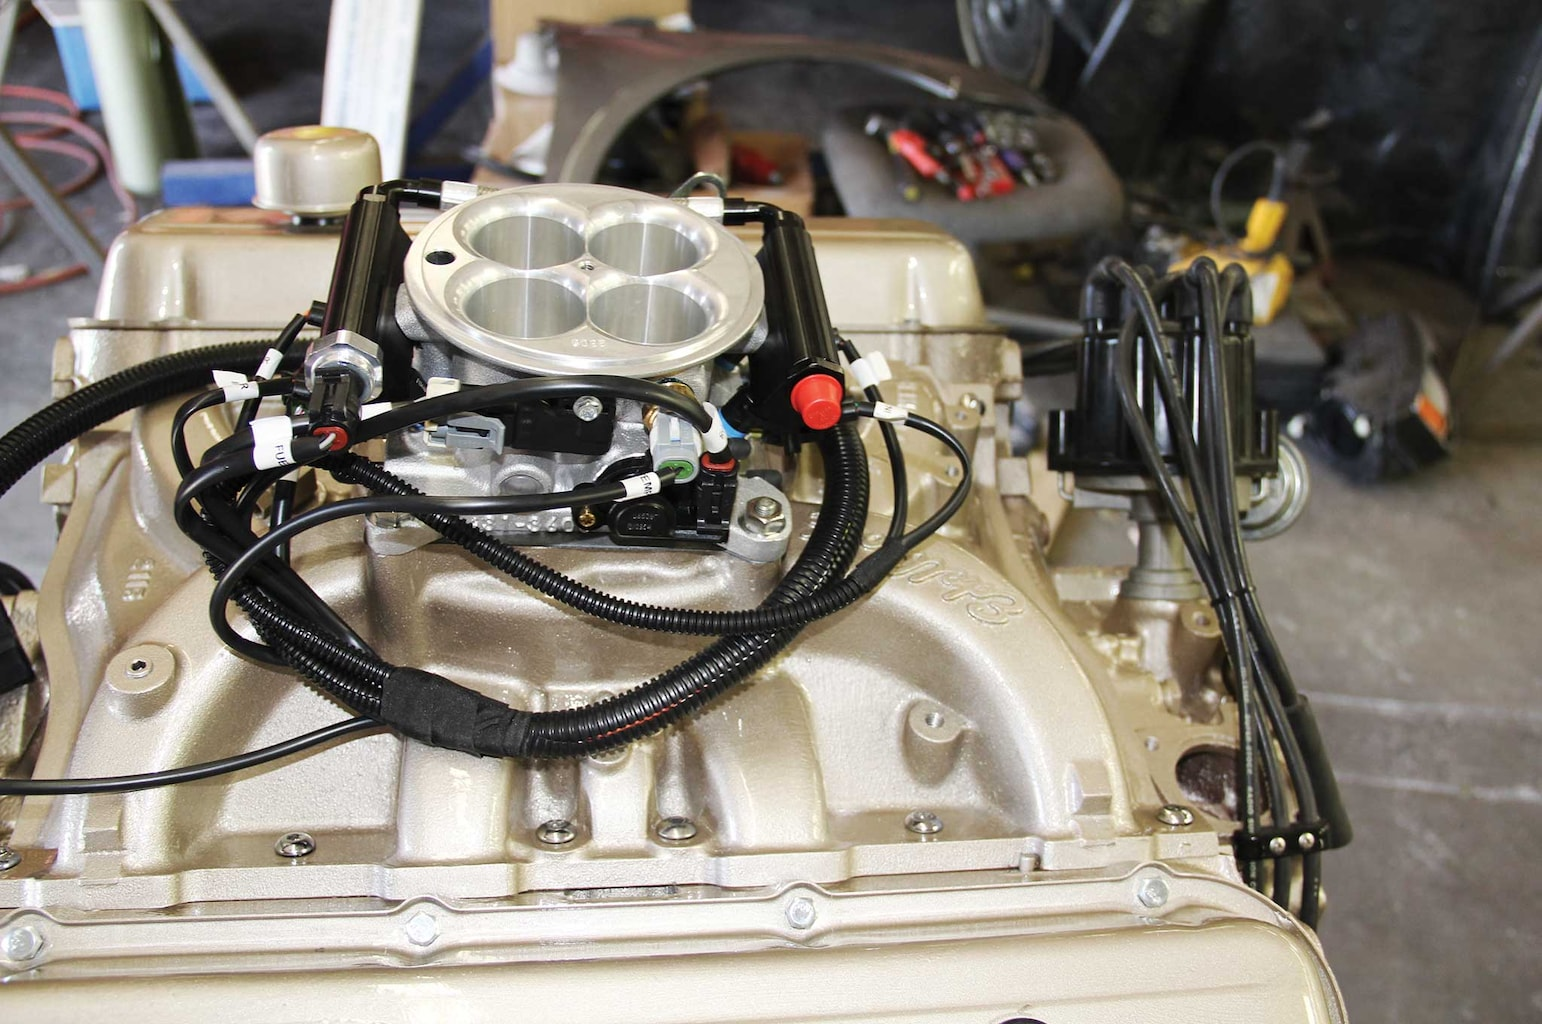 009 e street efi system conversion part 1 wiring harness installation